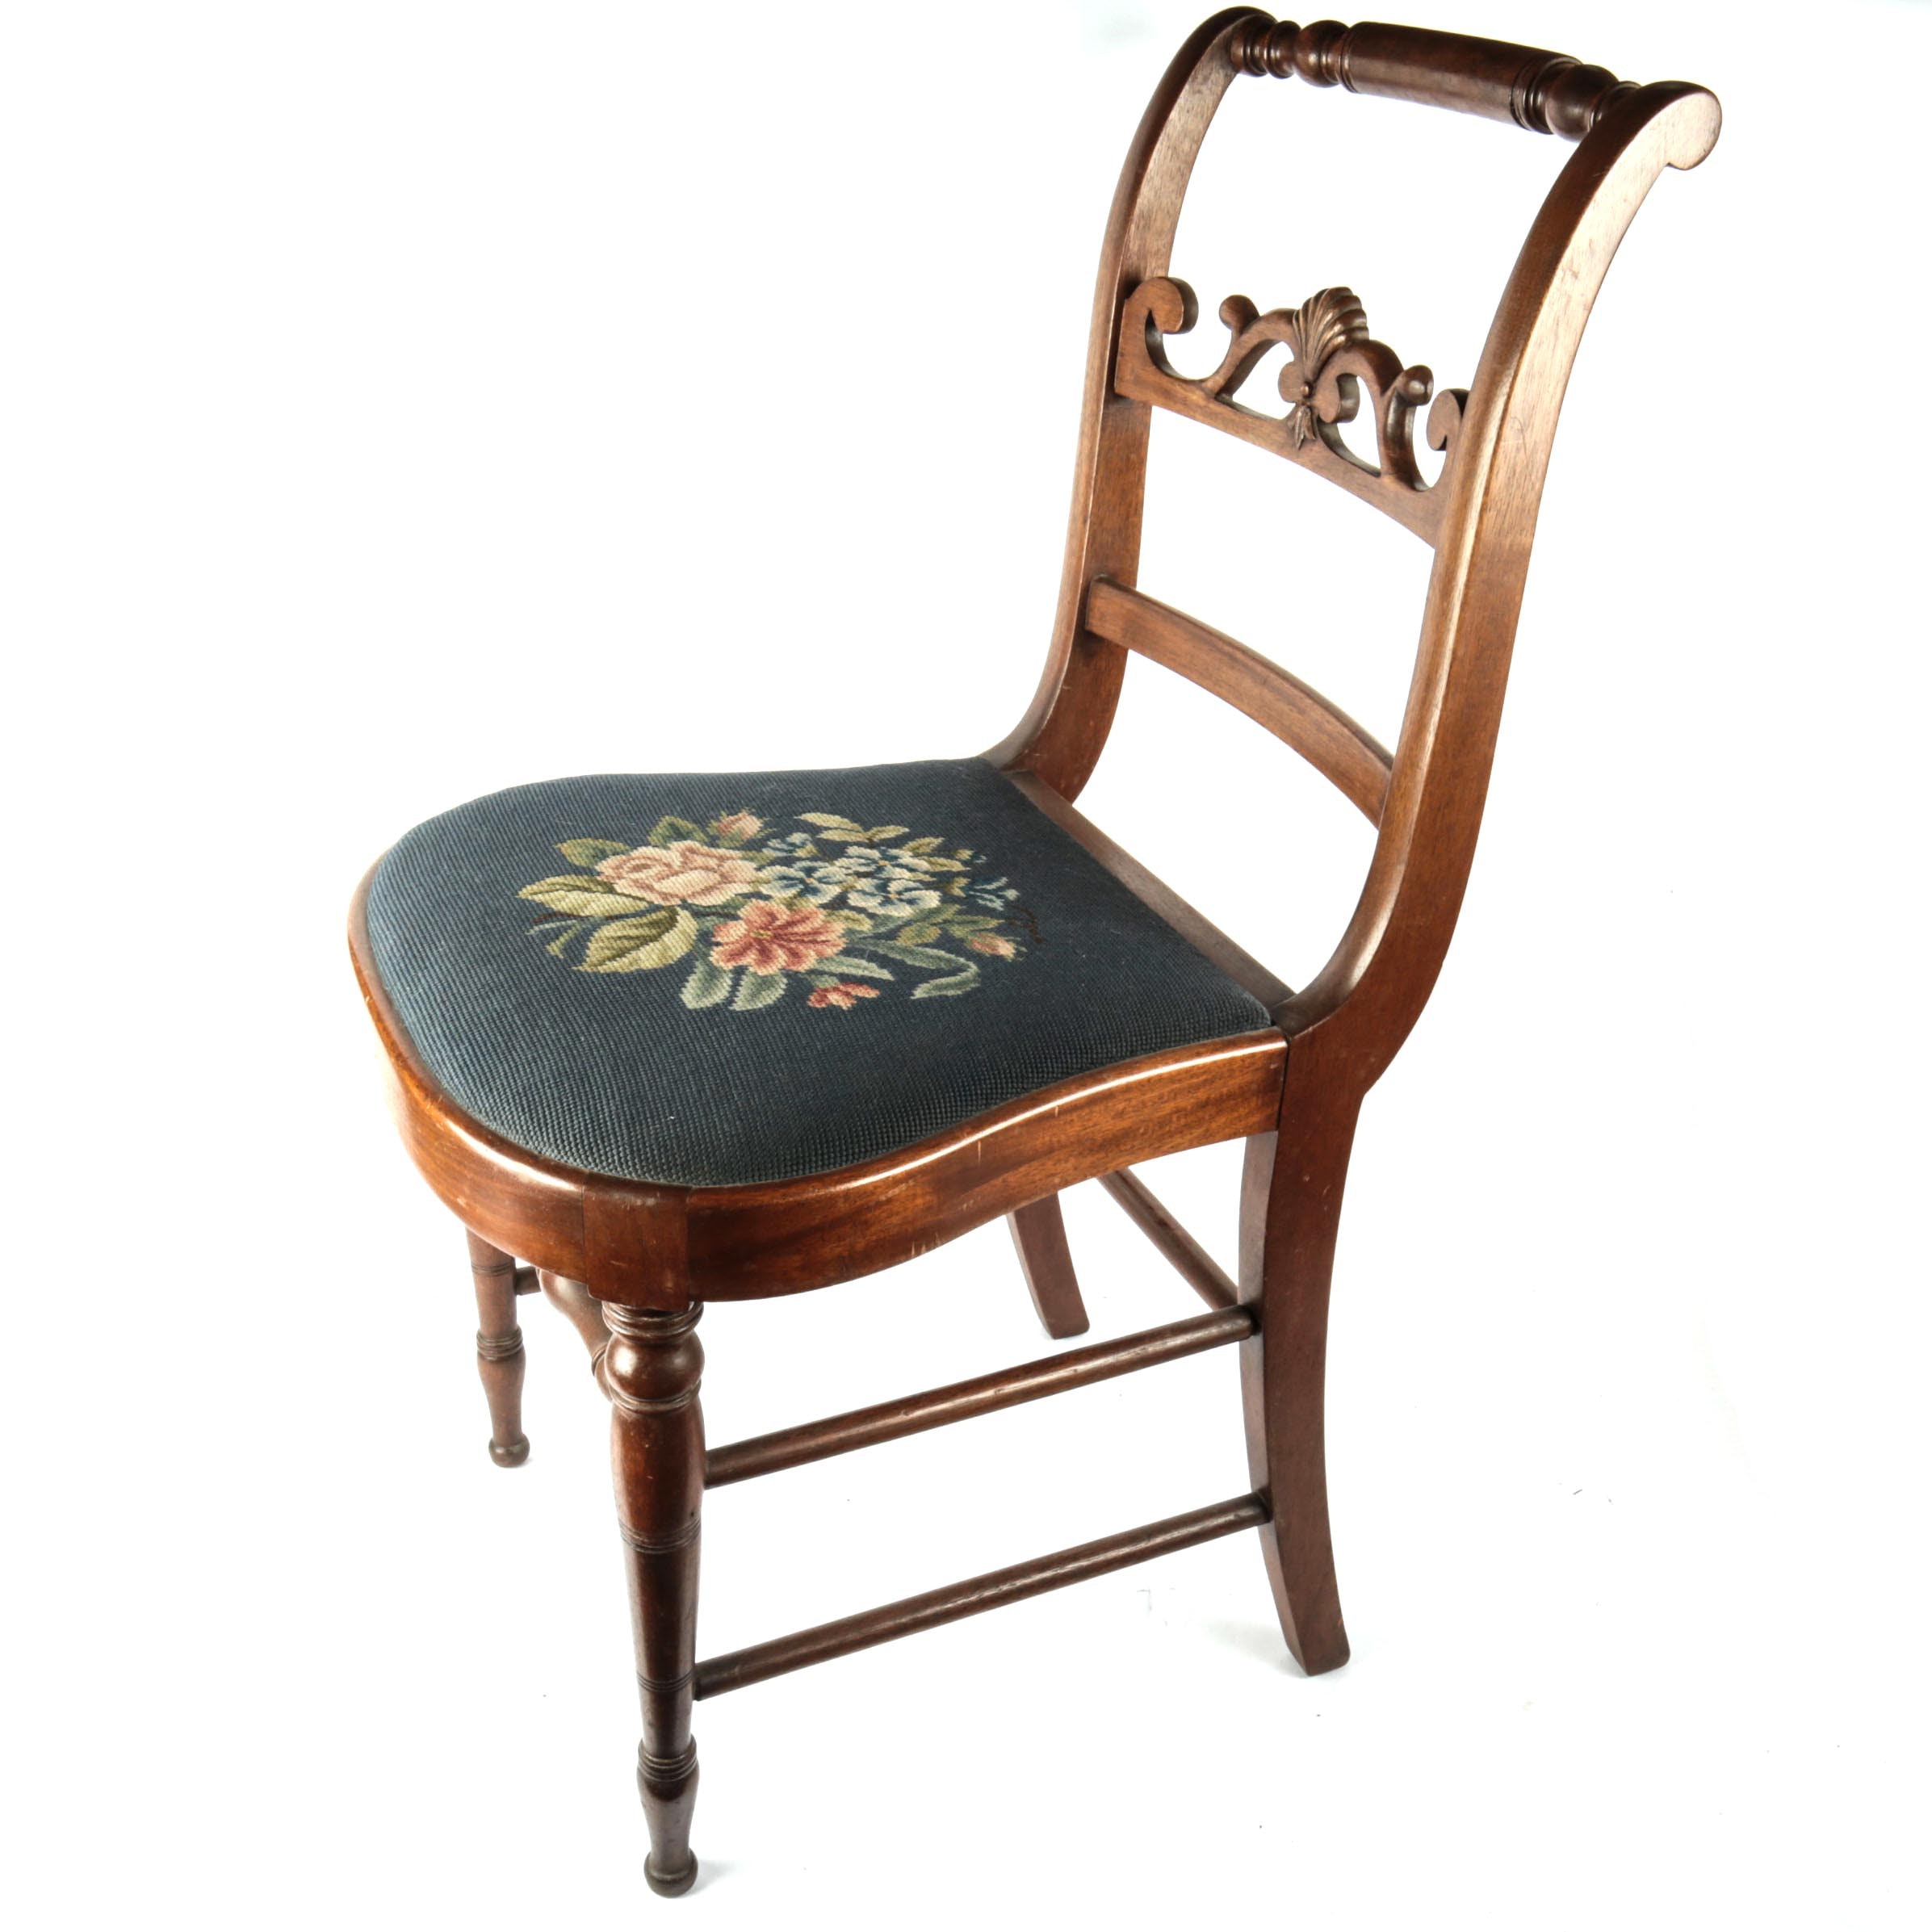 Vintage Wooden Chair With Needlepoint Seat ...